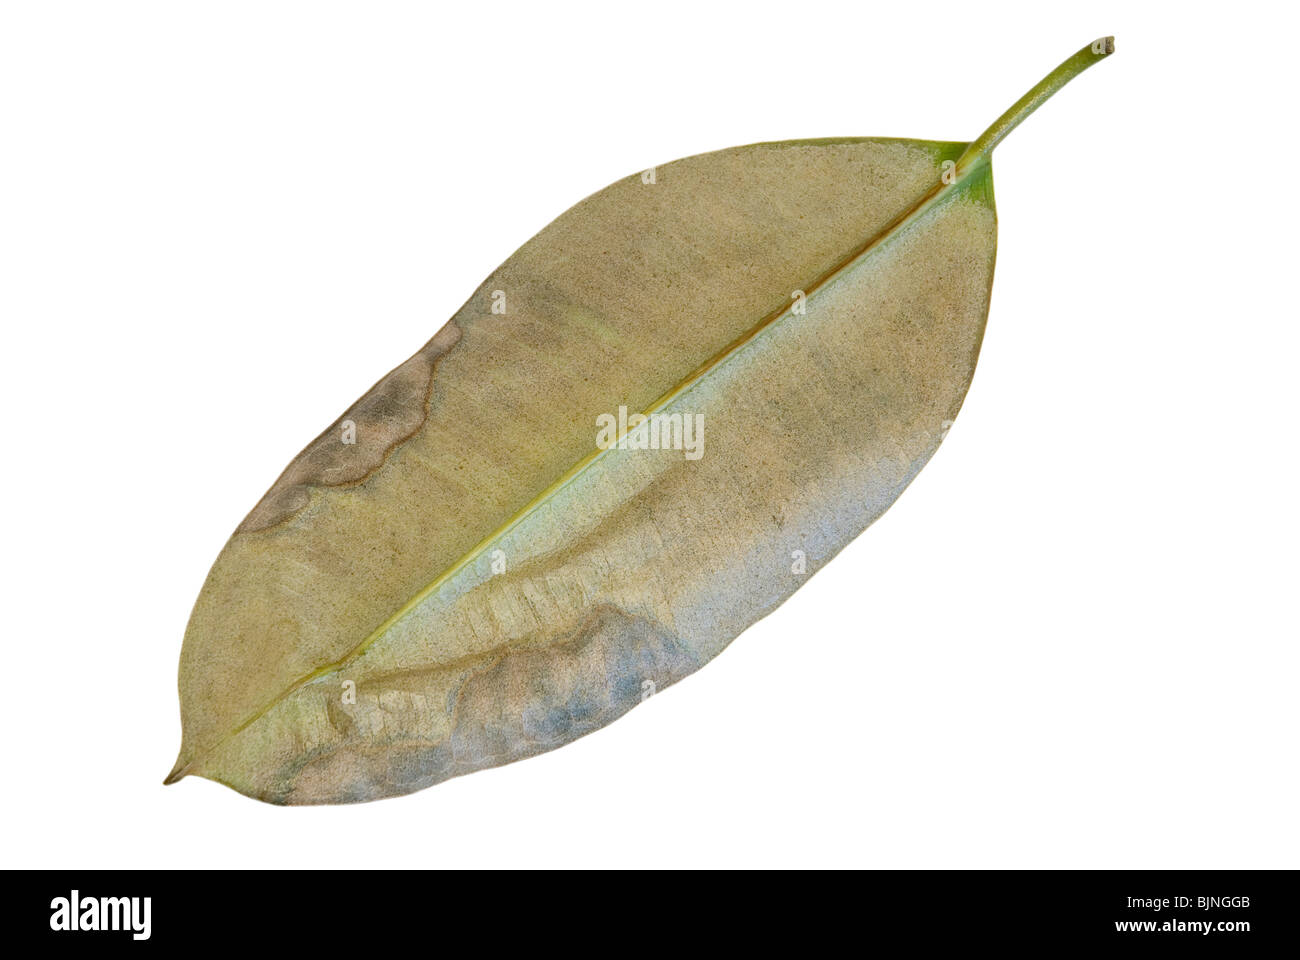 Closeup of ficus elastica leaf affected by red spider (Panonychus ulmi, Tetranychus telarius) - Stock Image